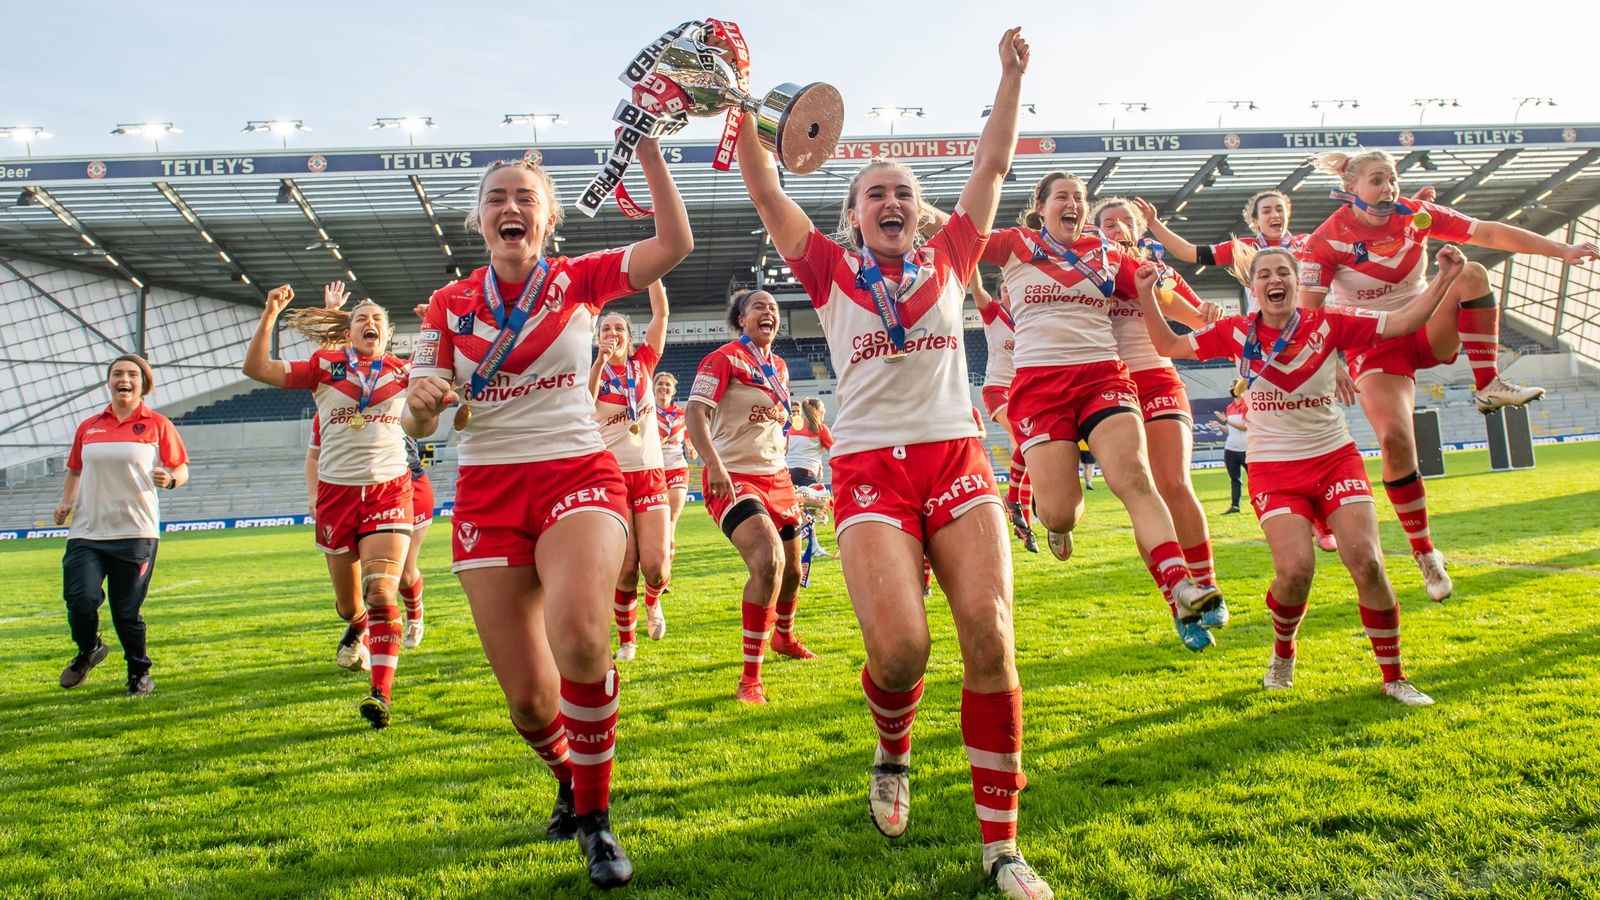 Women's Super League: Treble winners and record crowd for Grand Final highlight competition's rise | Rugby League News